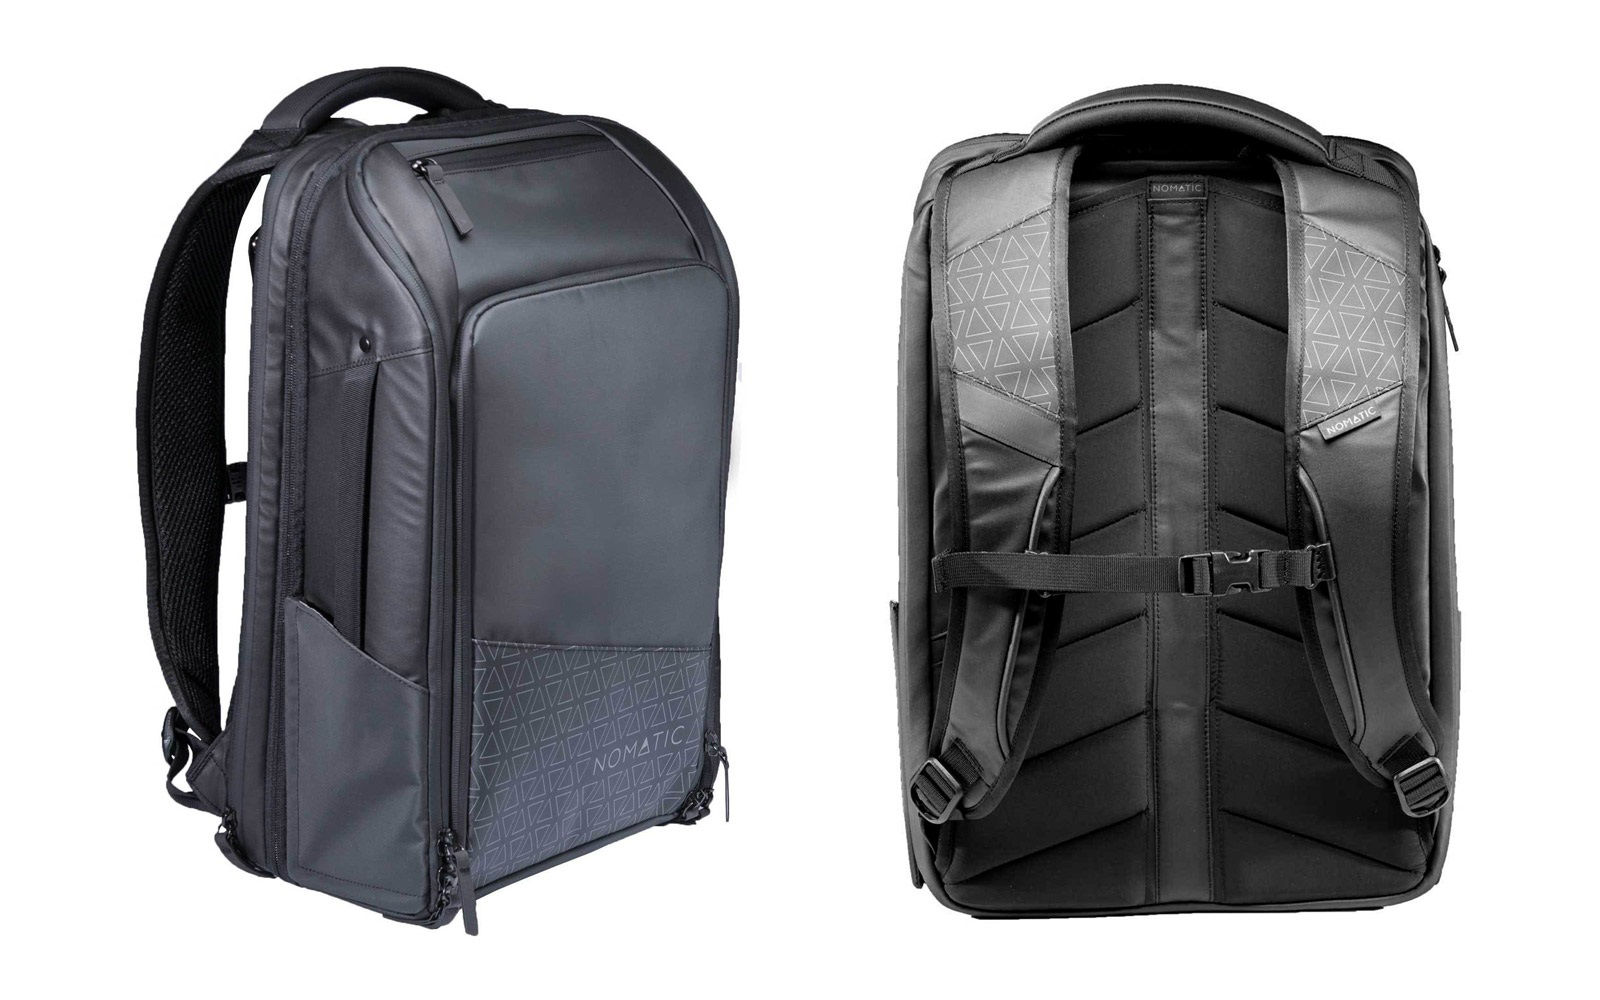 Picture for category Video Backpacks